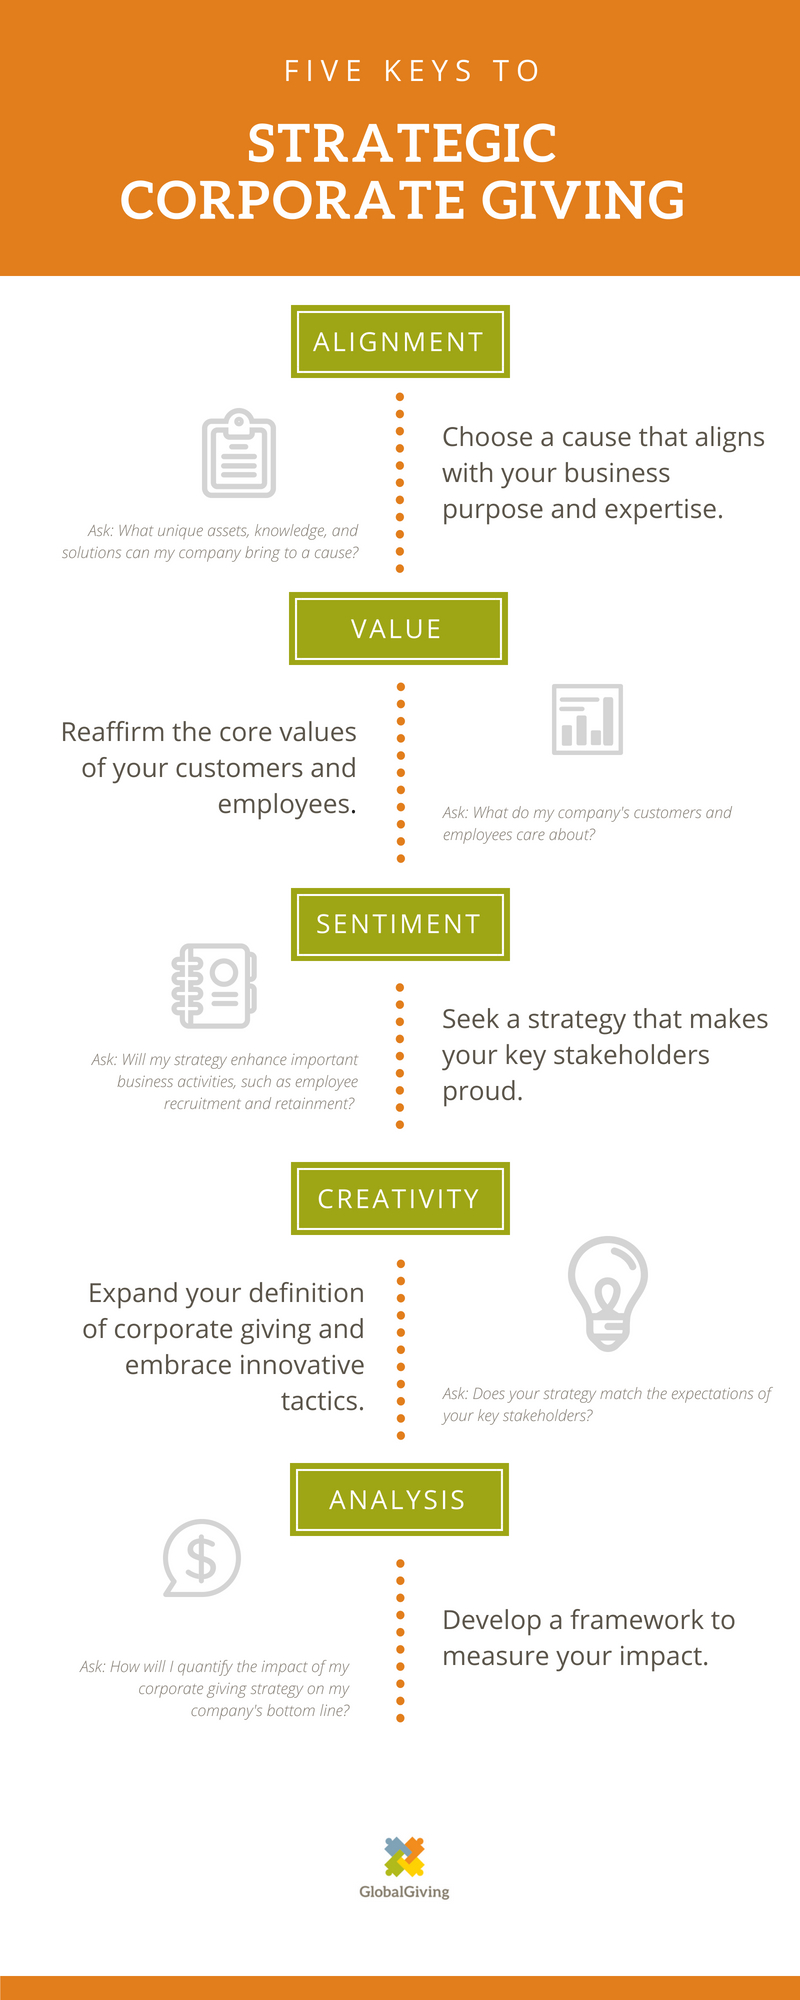 Strategic Corporate Giving Tips